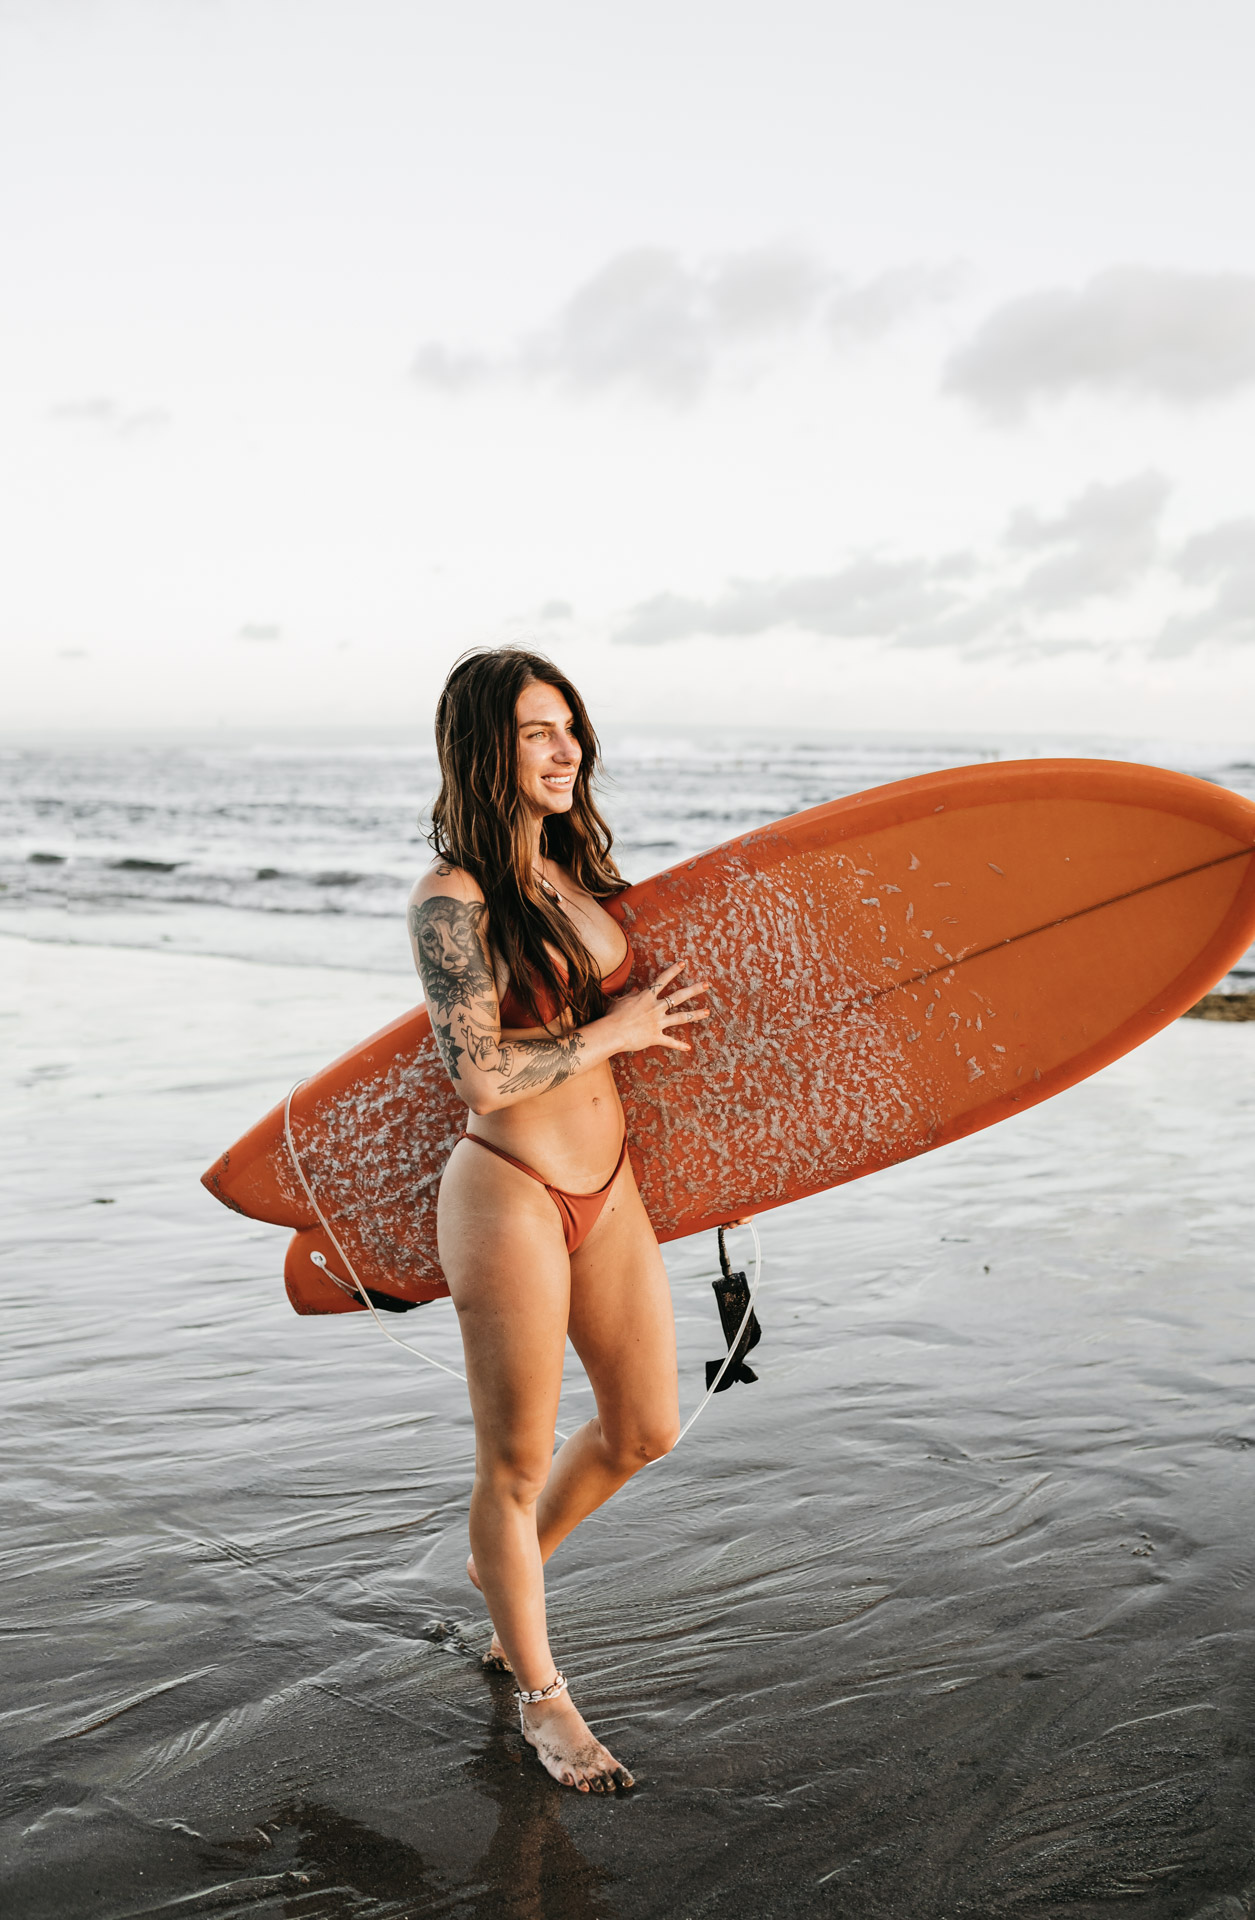 keira-mason-nordic-retreats-surf-orange-board.jpg